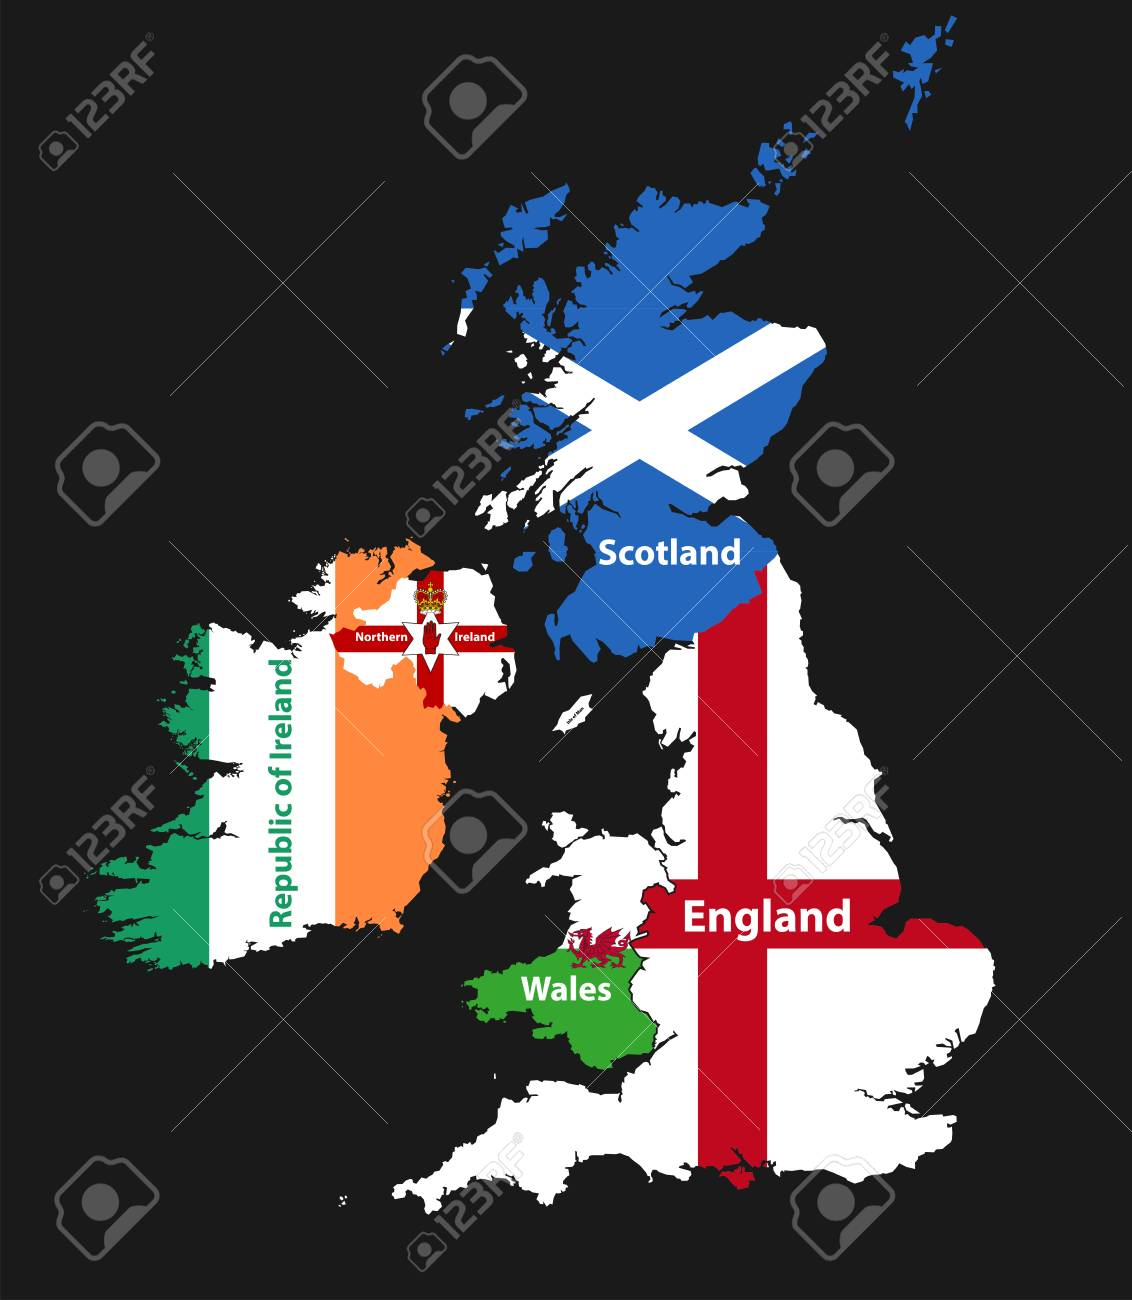 Countries of British Isles: United Kingdom (England, Scotland, Wales, Northern Ireland) and Republic of Ireland map combined with flags - 91755309